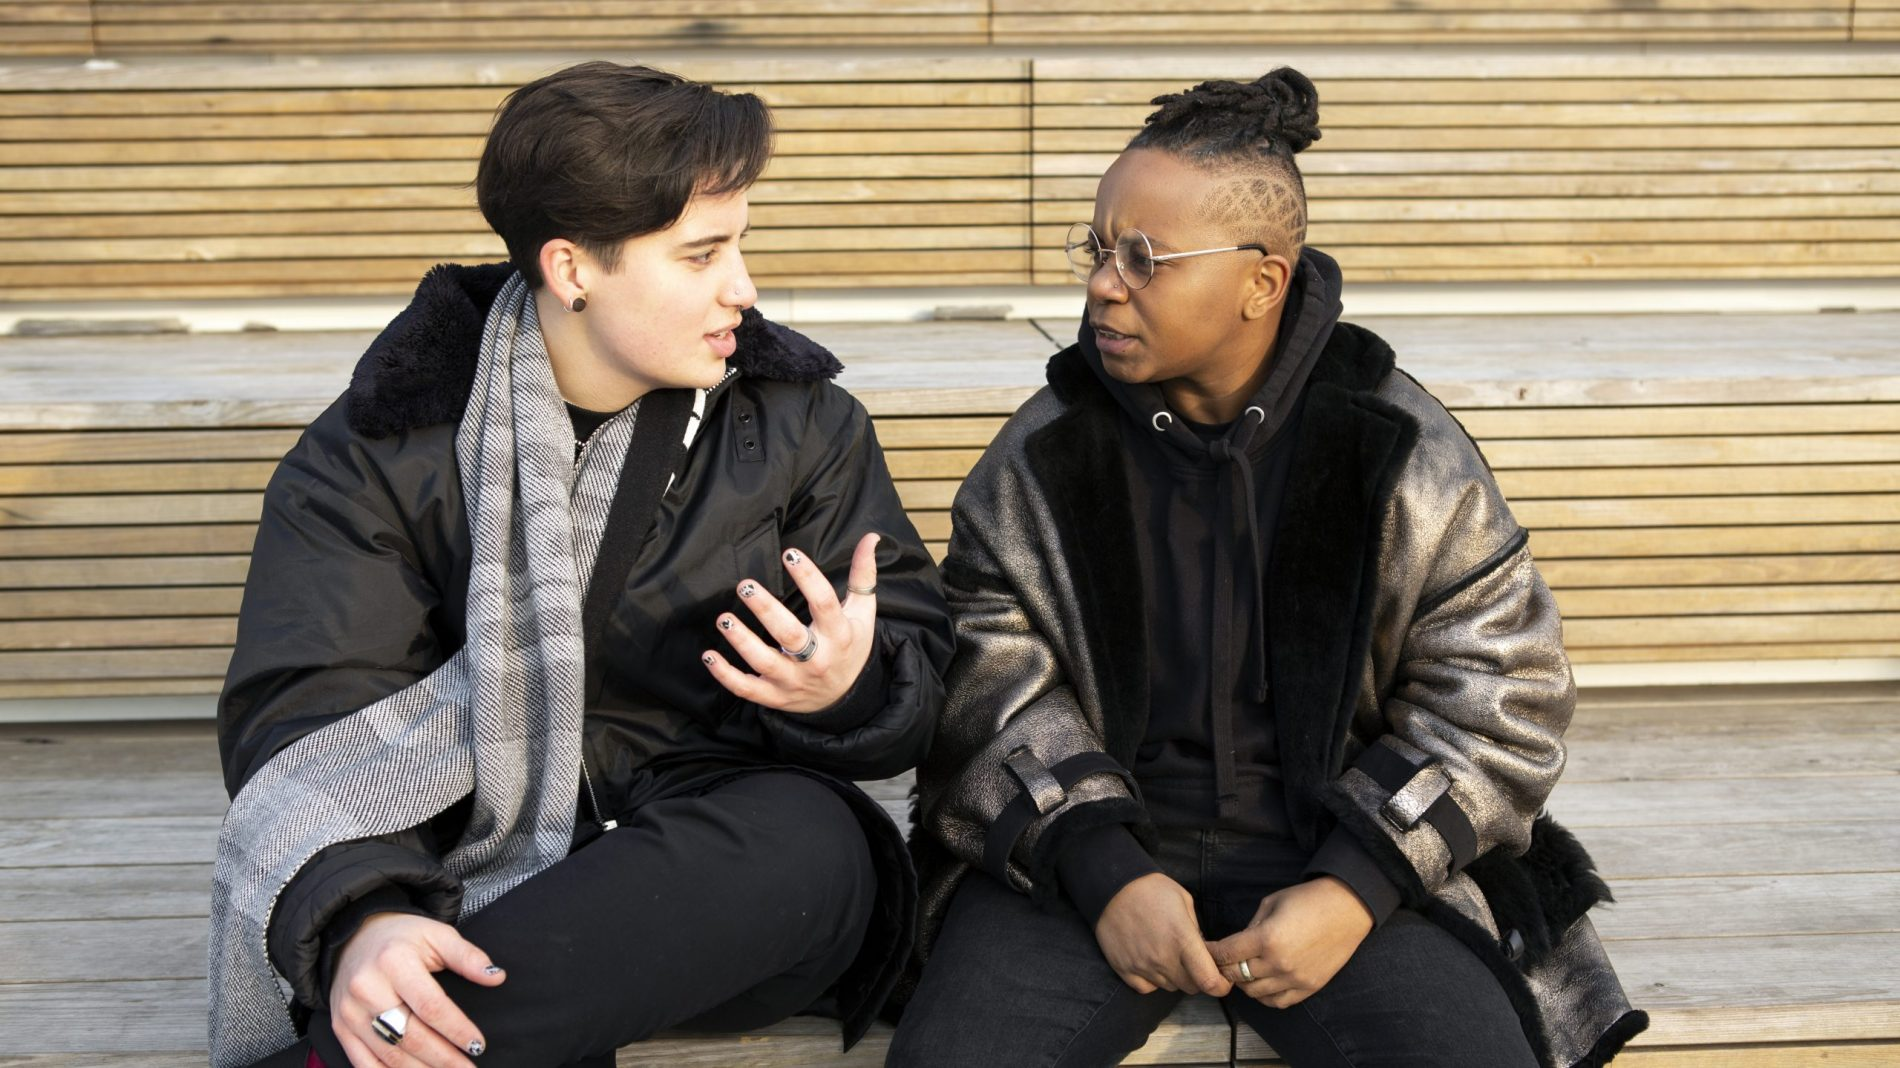 Two trans young people taking together